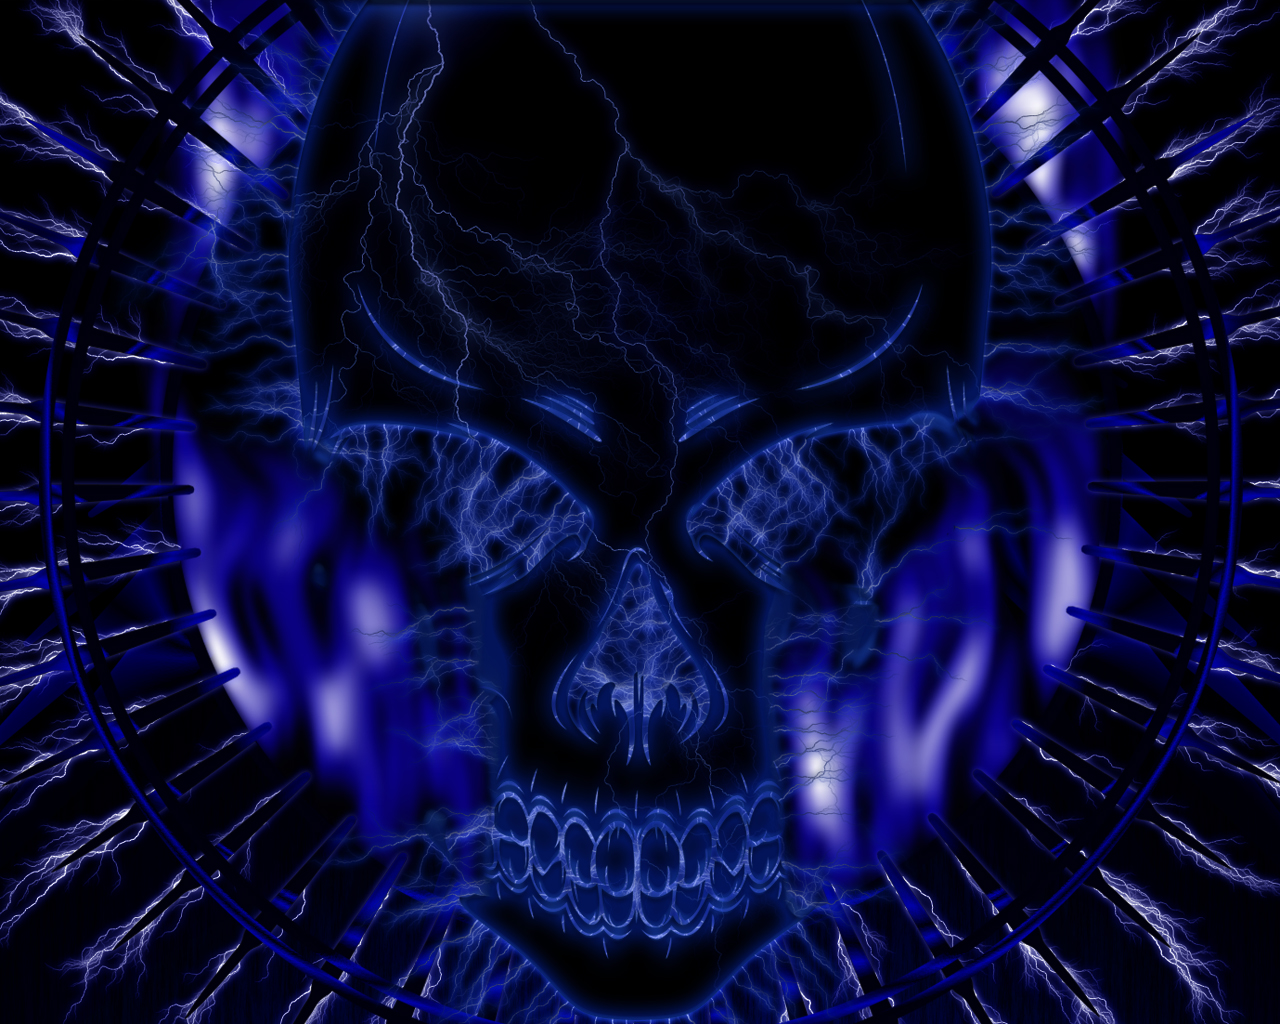 blue wallpaper skull - photo #2